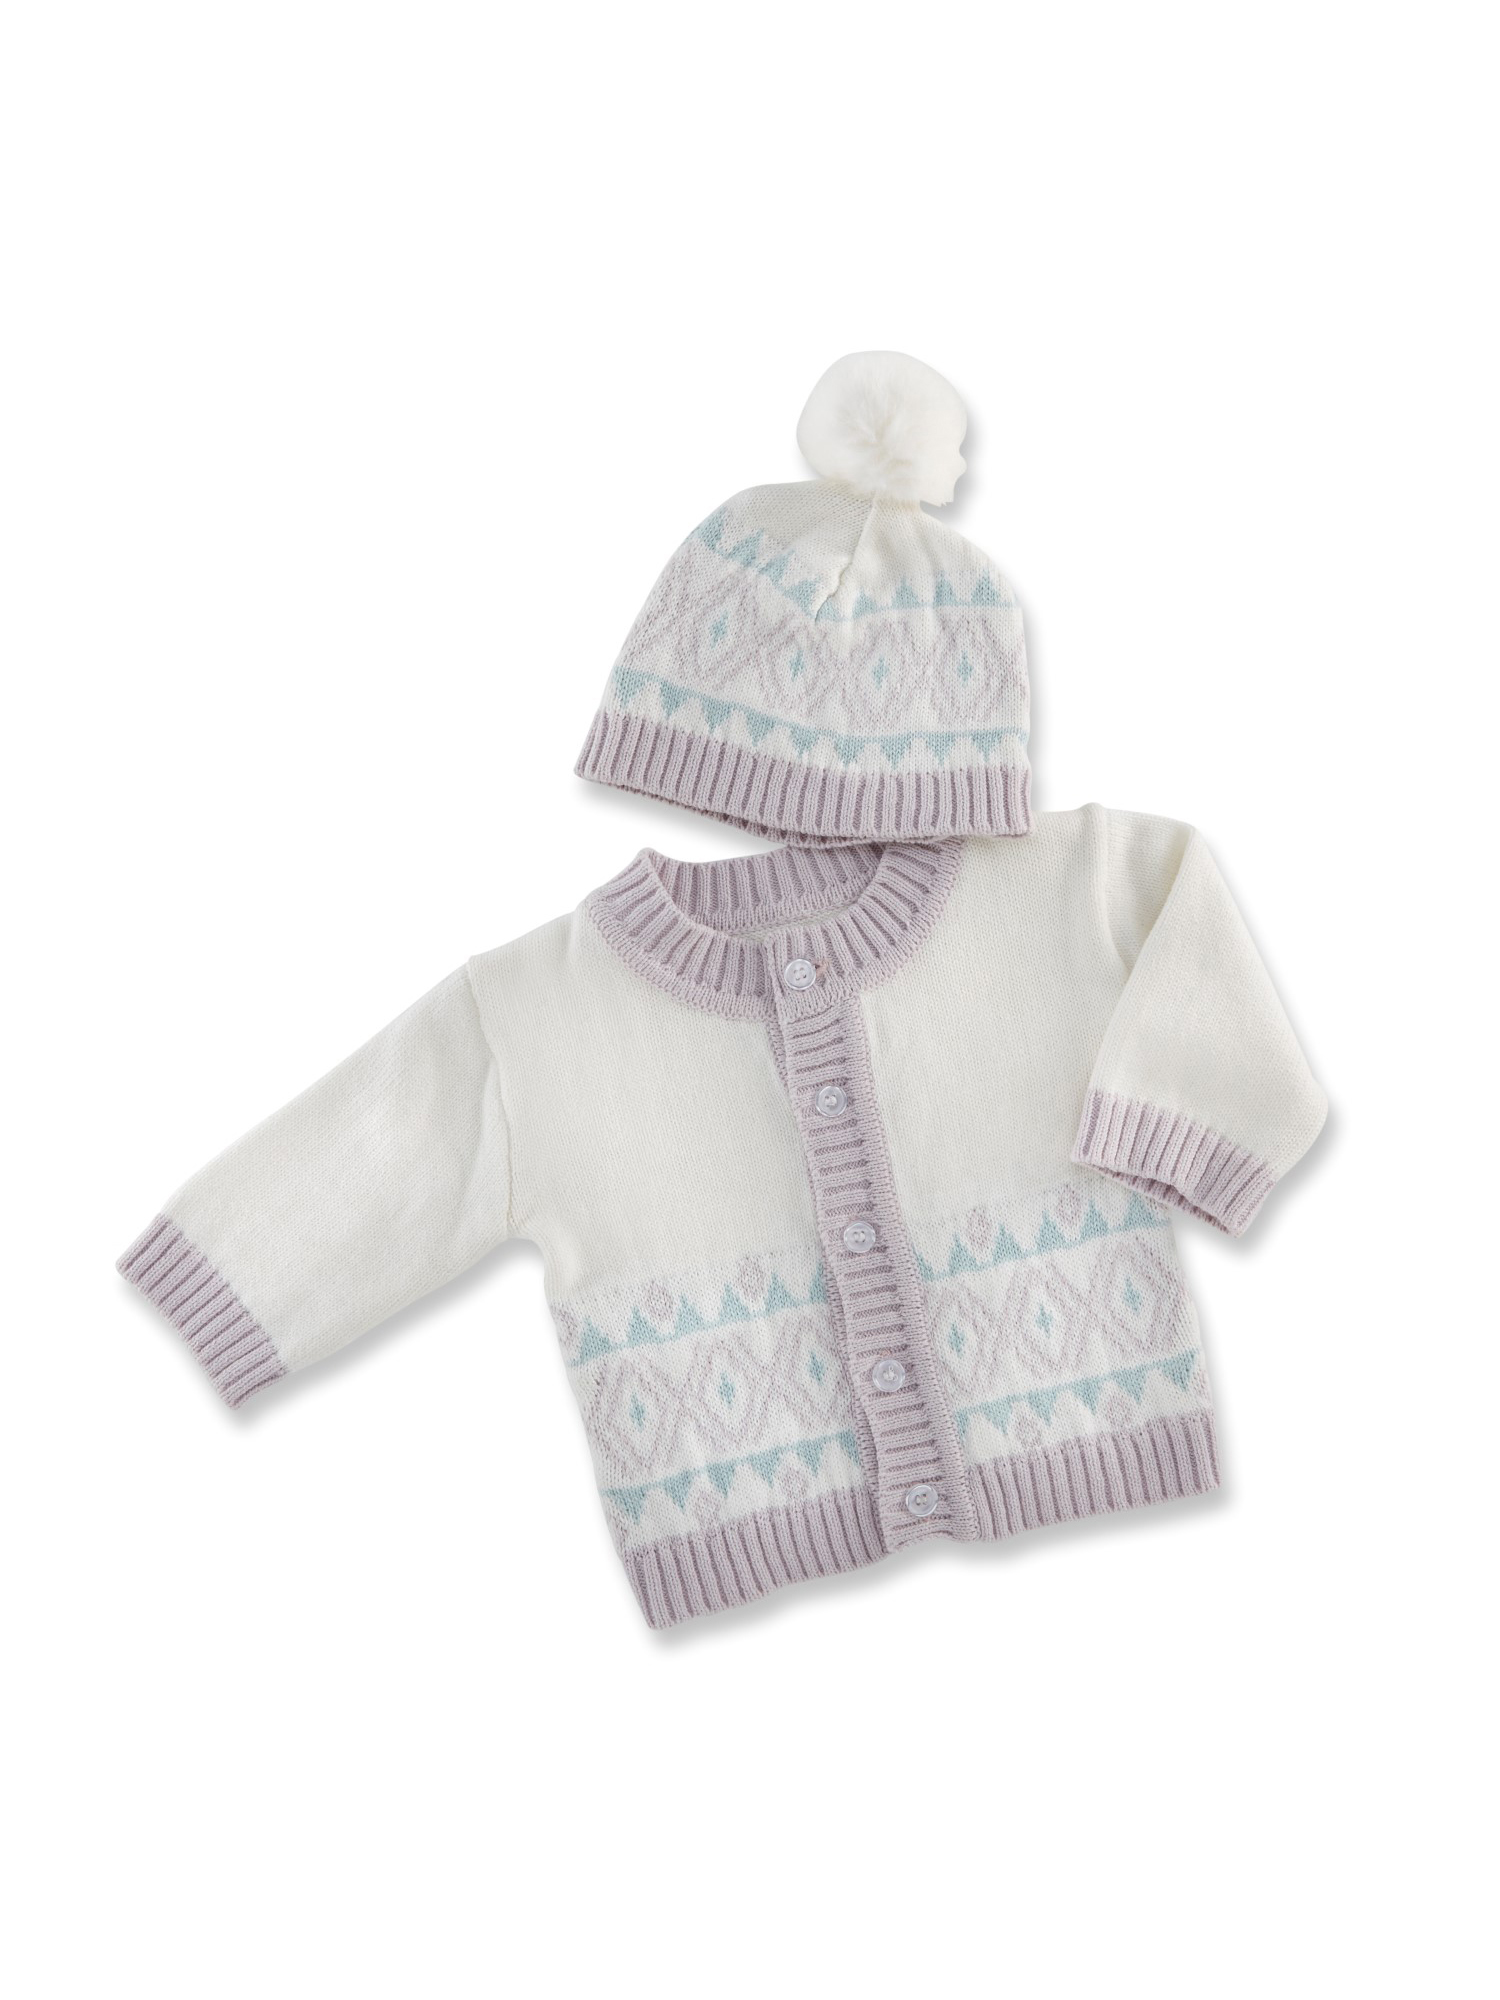 Baby Aspen Fair Isle Cardigan & Pom Pom Hat, 2pc Set (Baby Girls) 0-6mo.